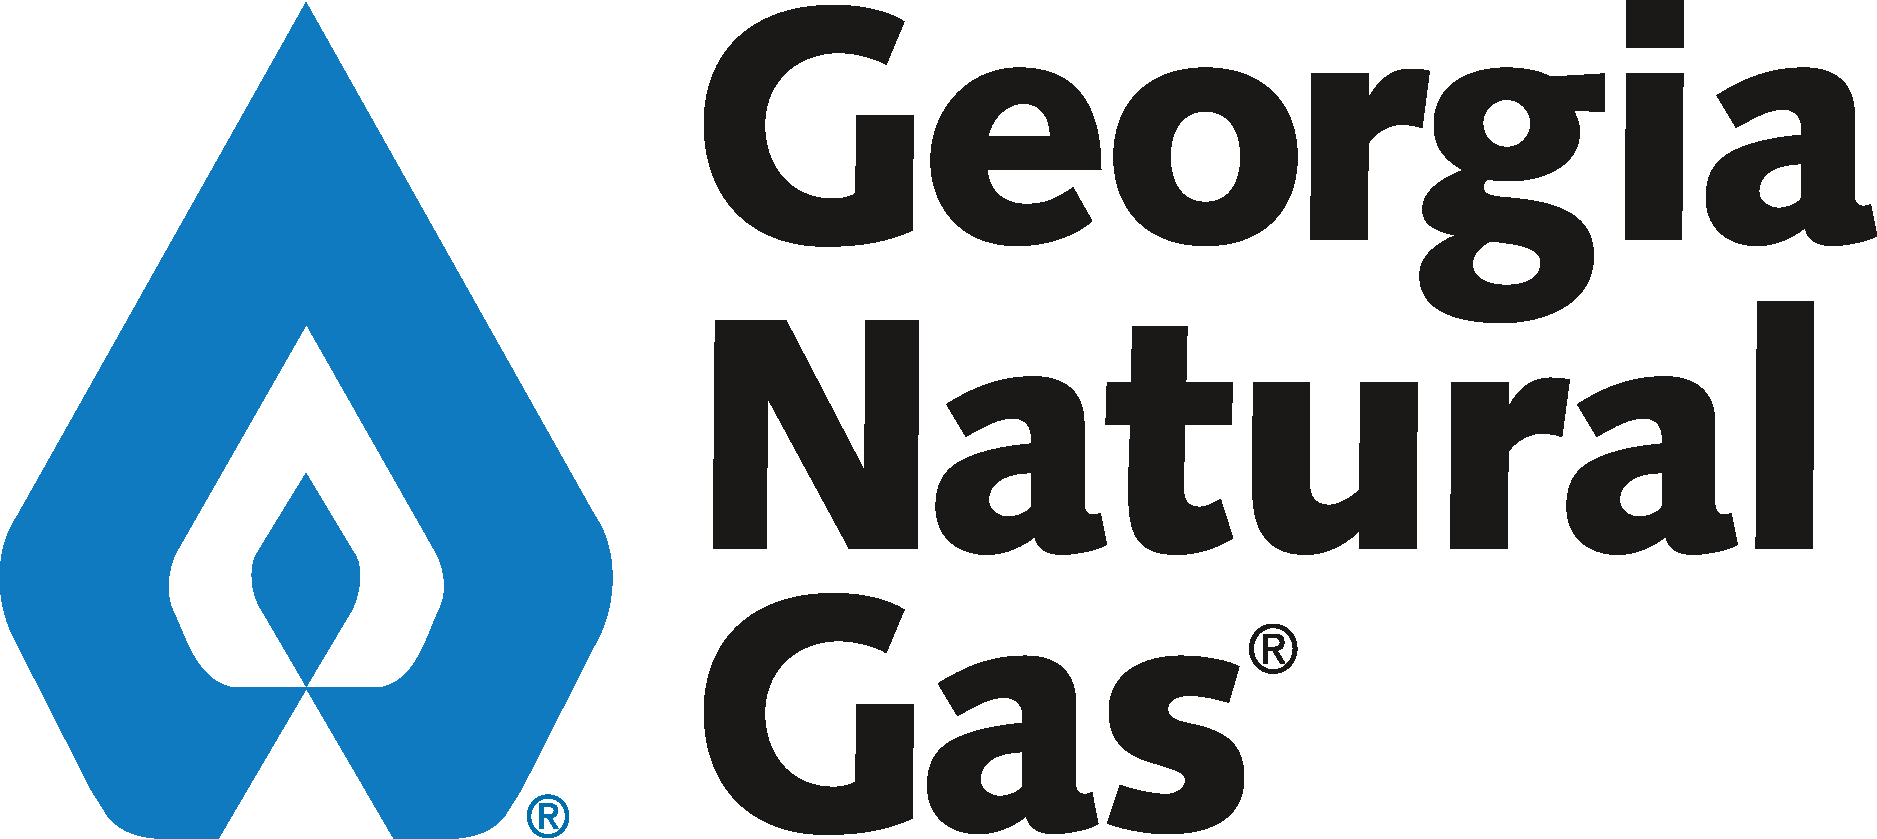 Image result for Georgia natural gas logo